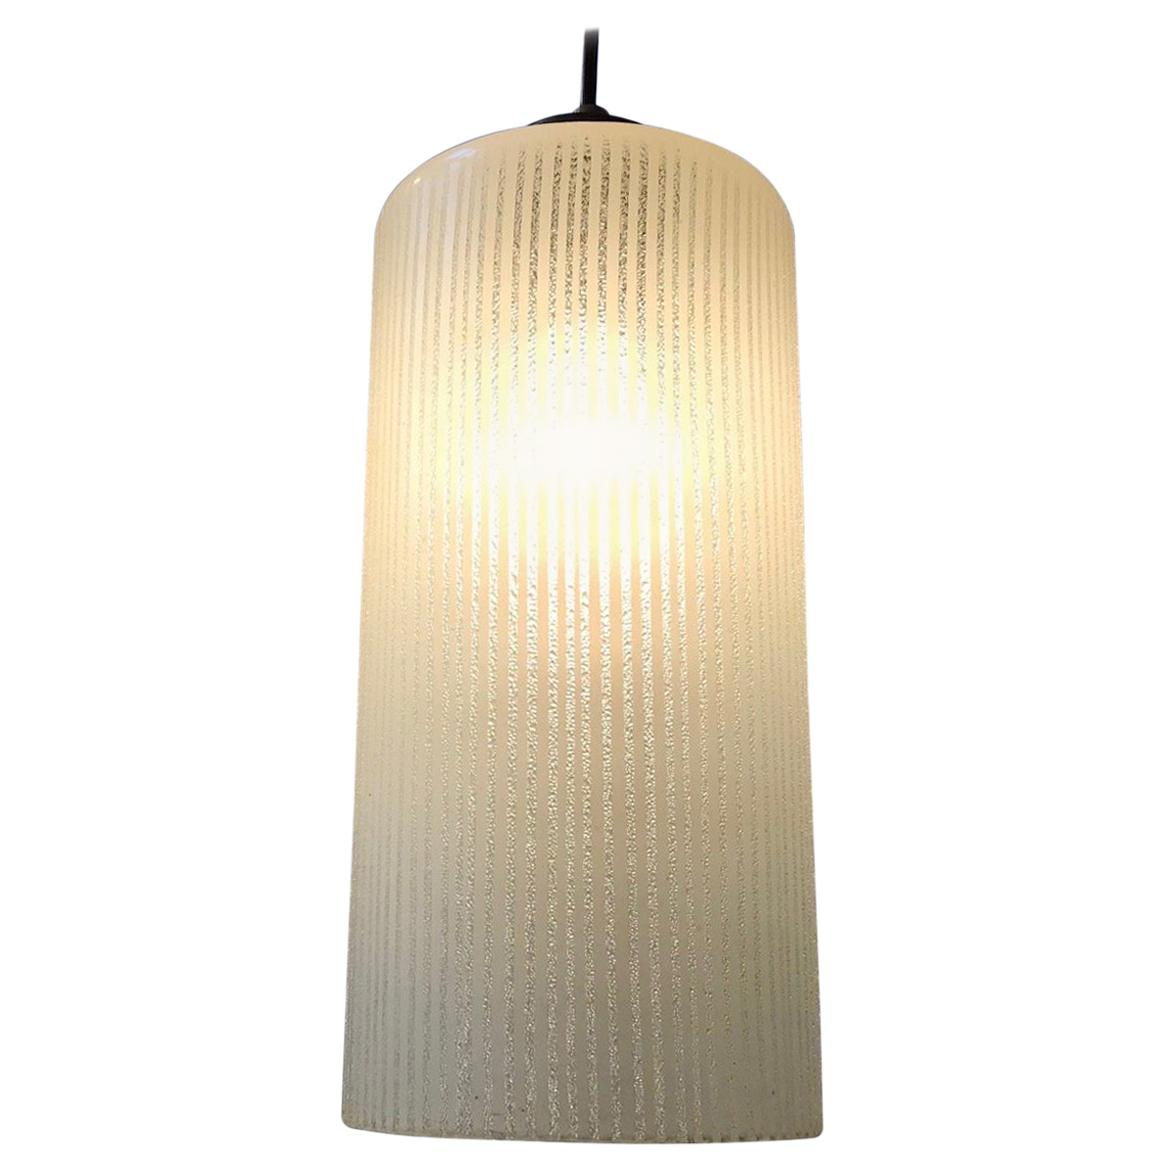 Vintage Danish Functionalist Pendant Lamp in Pinstriped Glass from Voss, 1950s